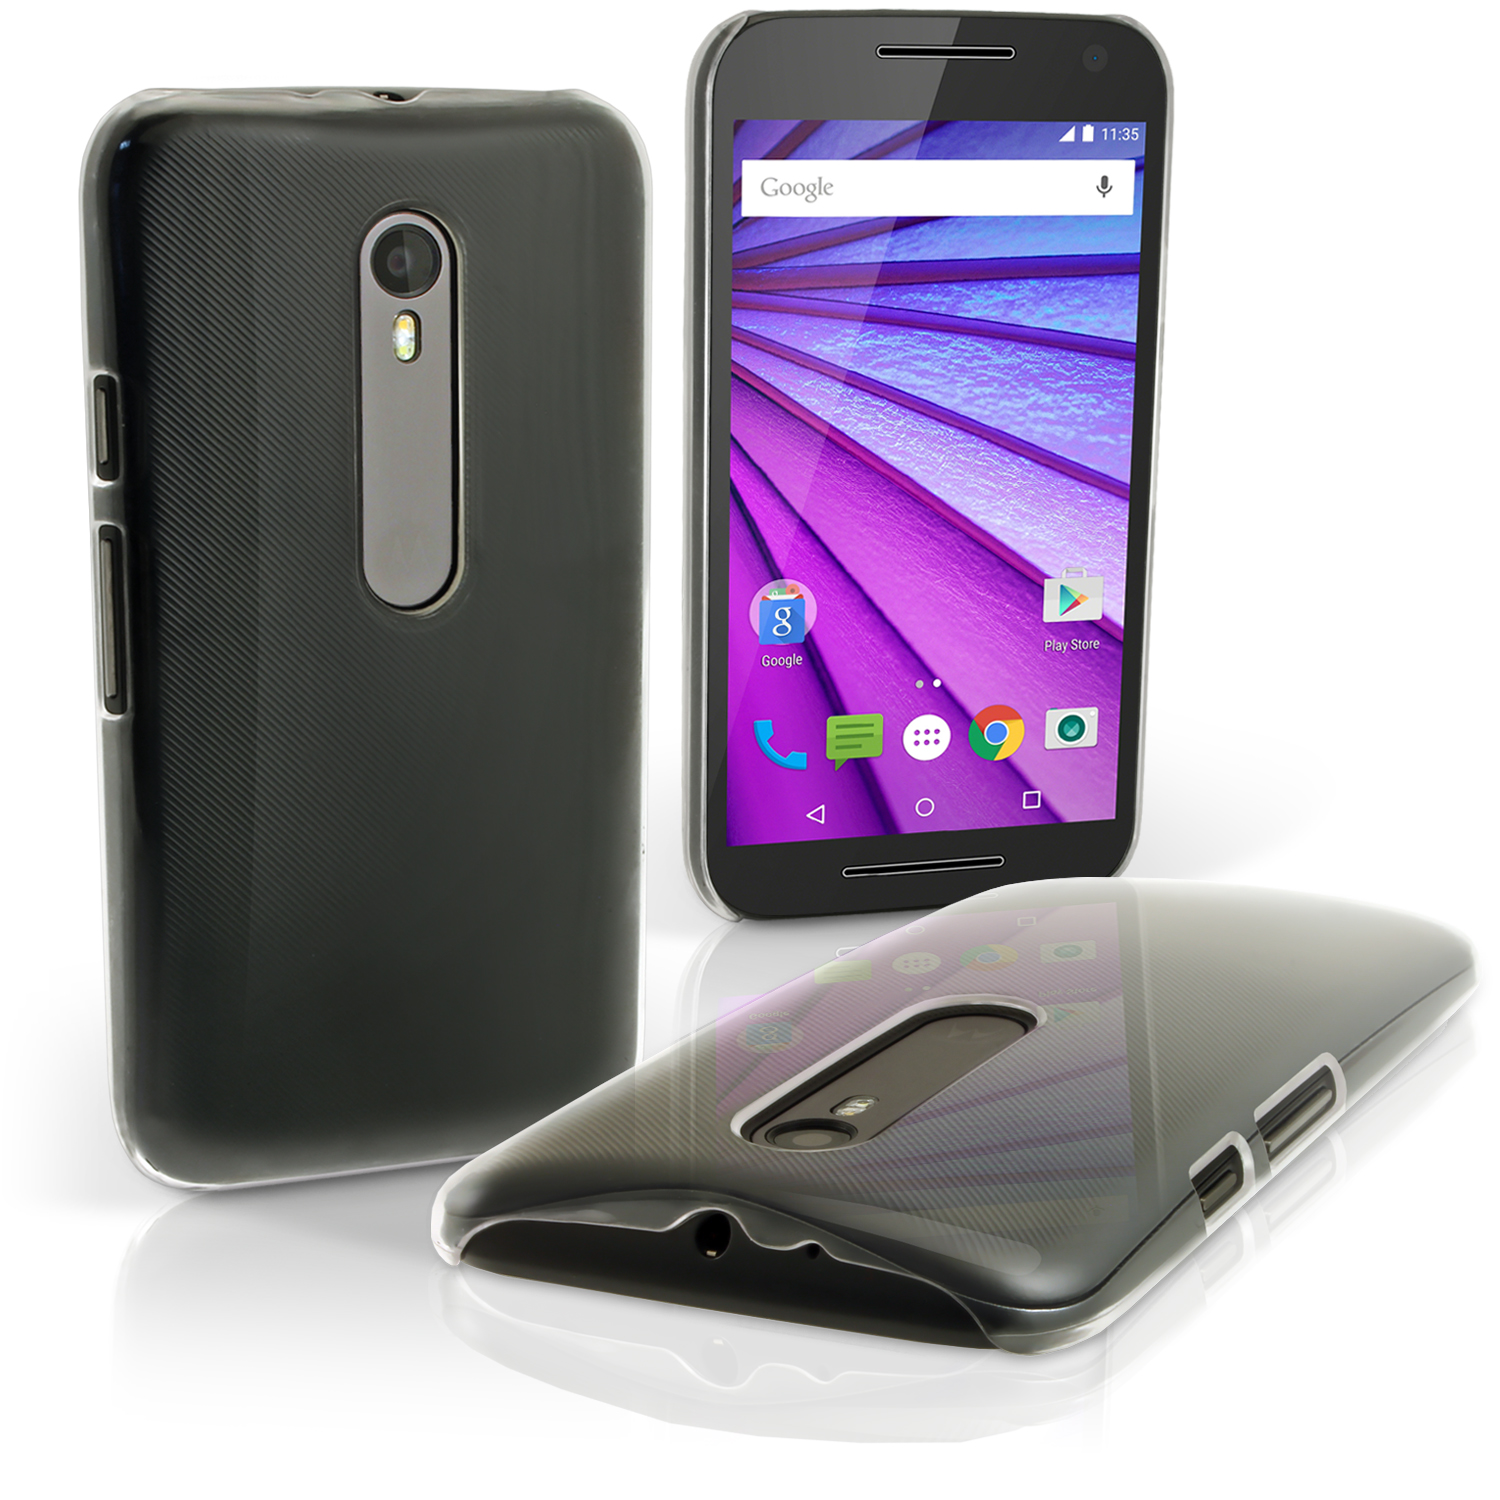 iGadgitz Clear PC Hard Case Cover Shell for Motorola Moto G 3rd Gen 2015 XT1540 + Screen Protector